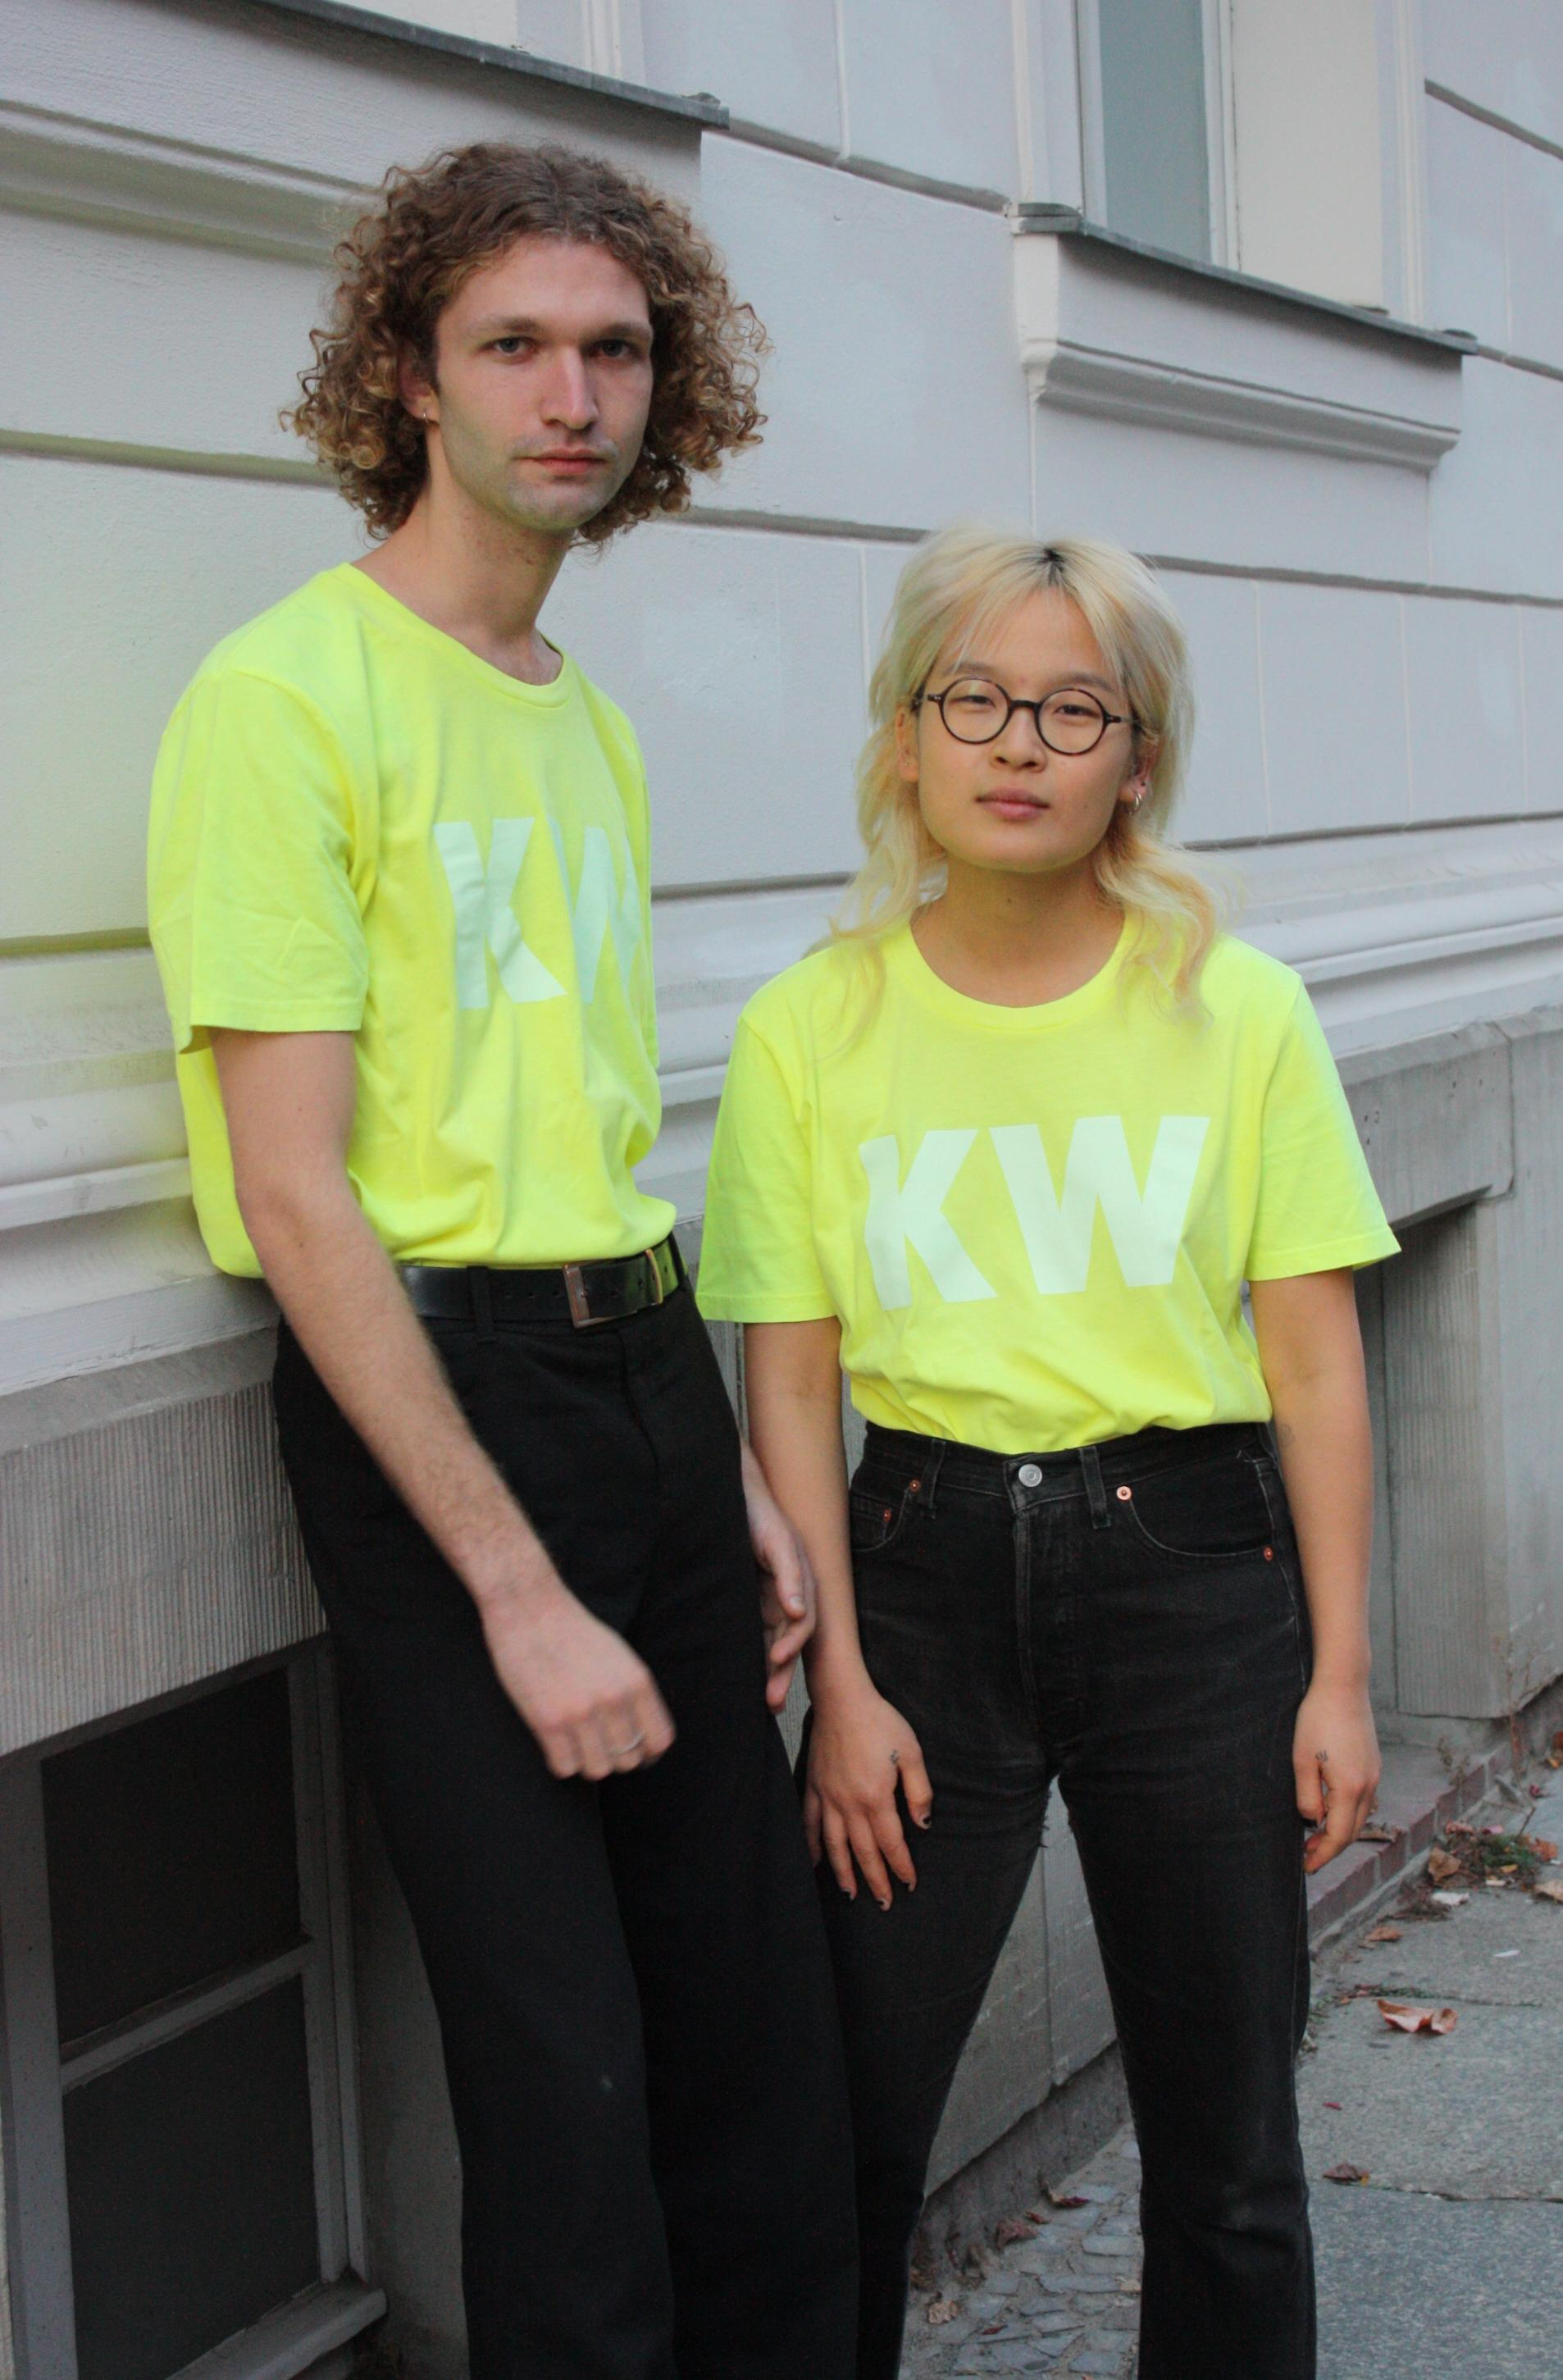 Neon Yellow KW Tshirt XL